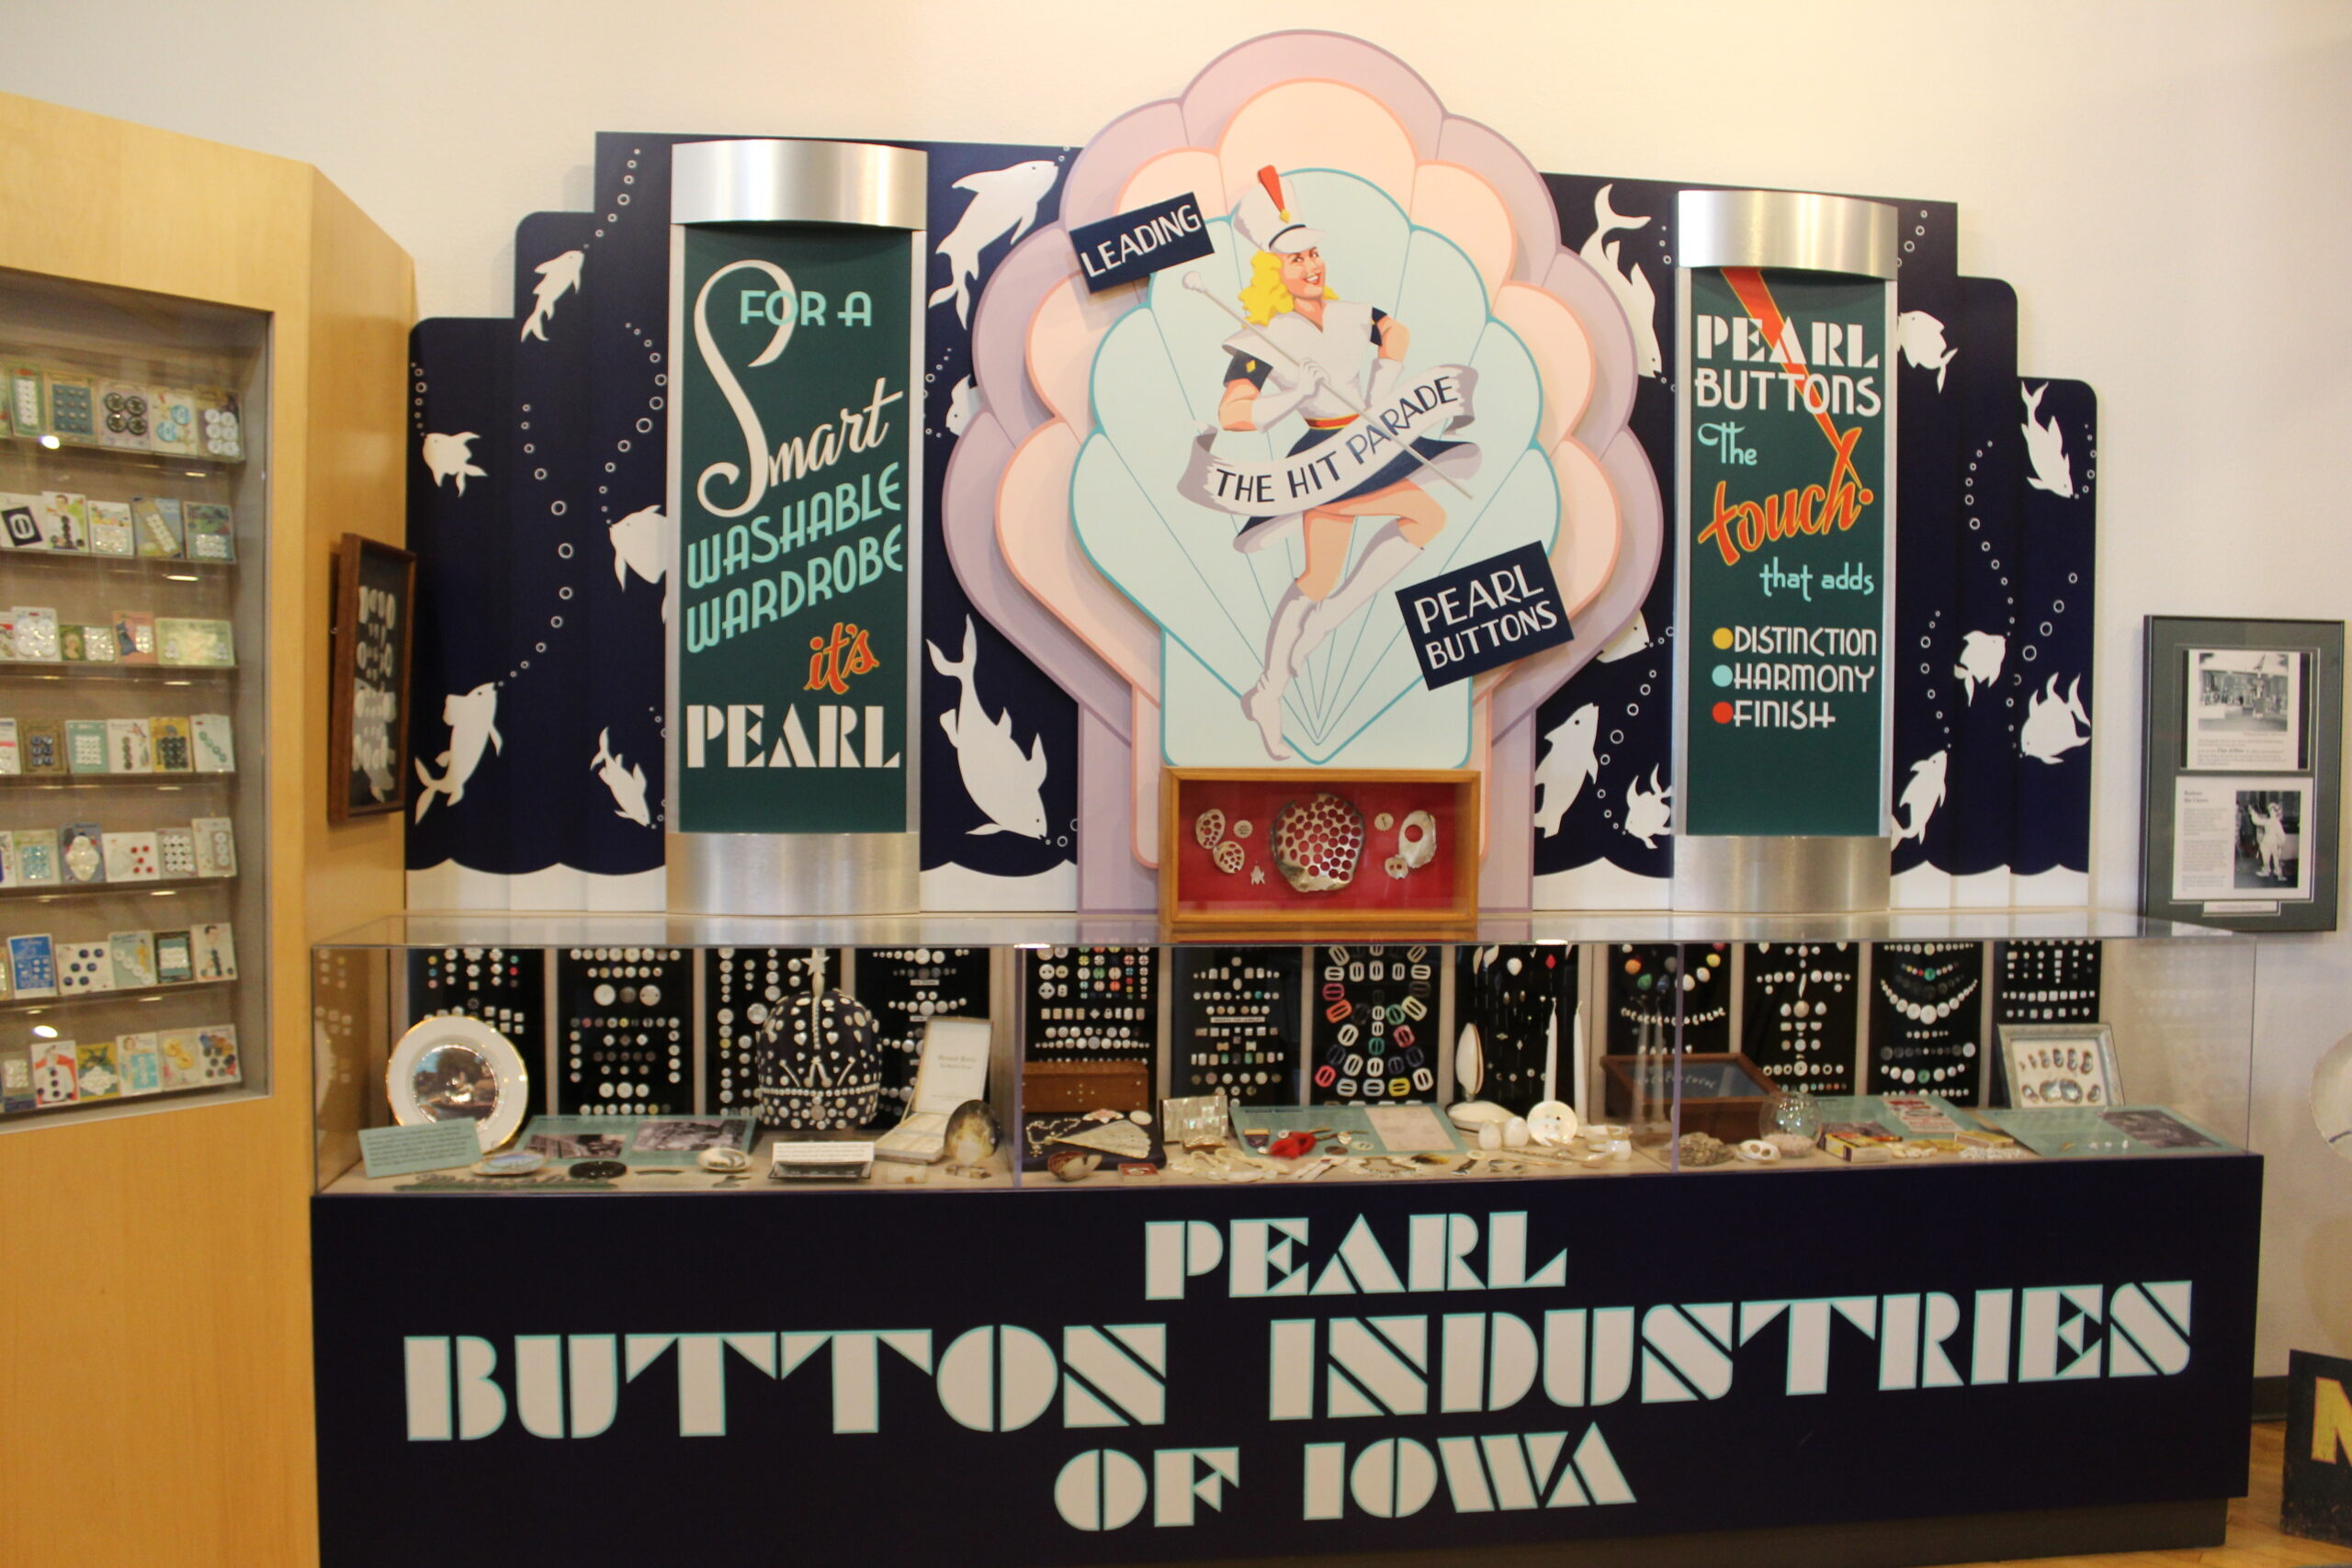 exhibit at the National Pearl Button Museum in Muscatine